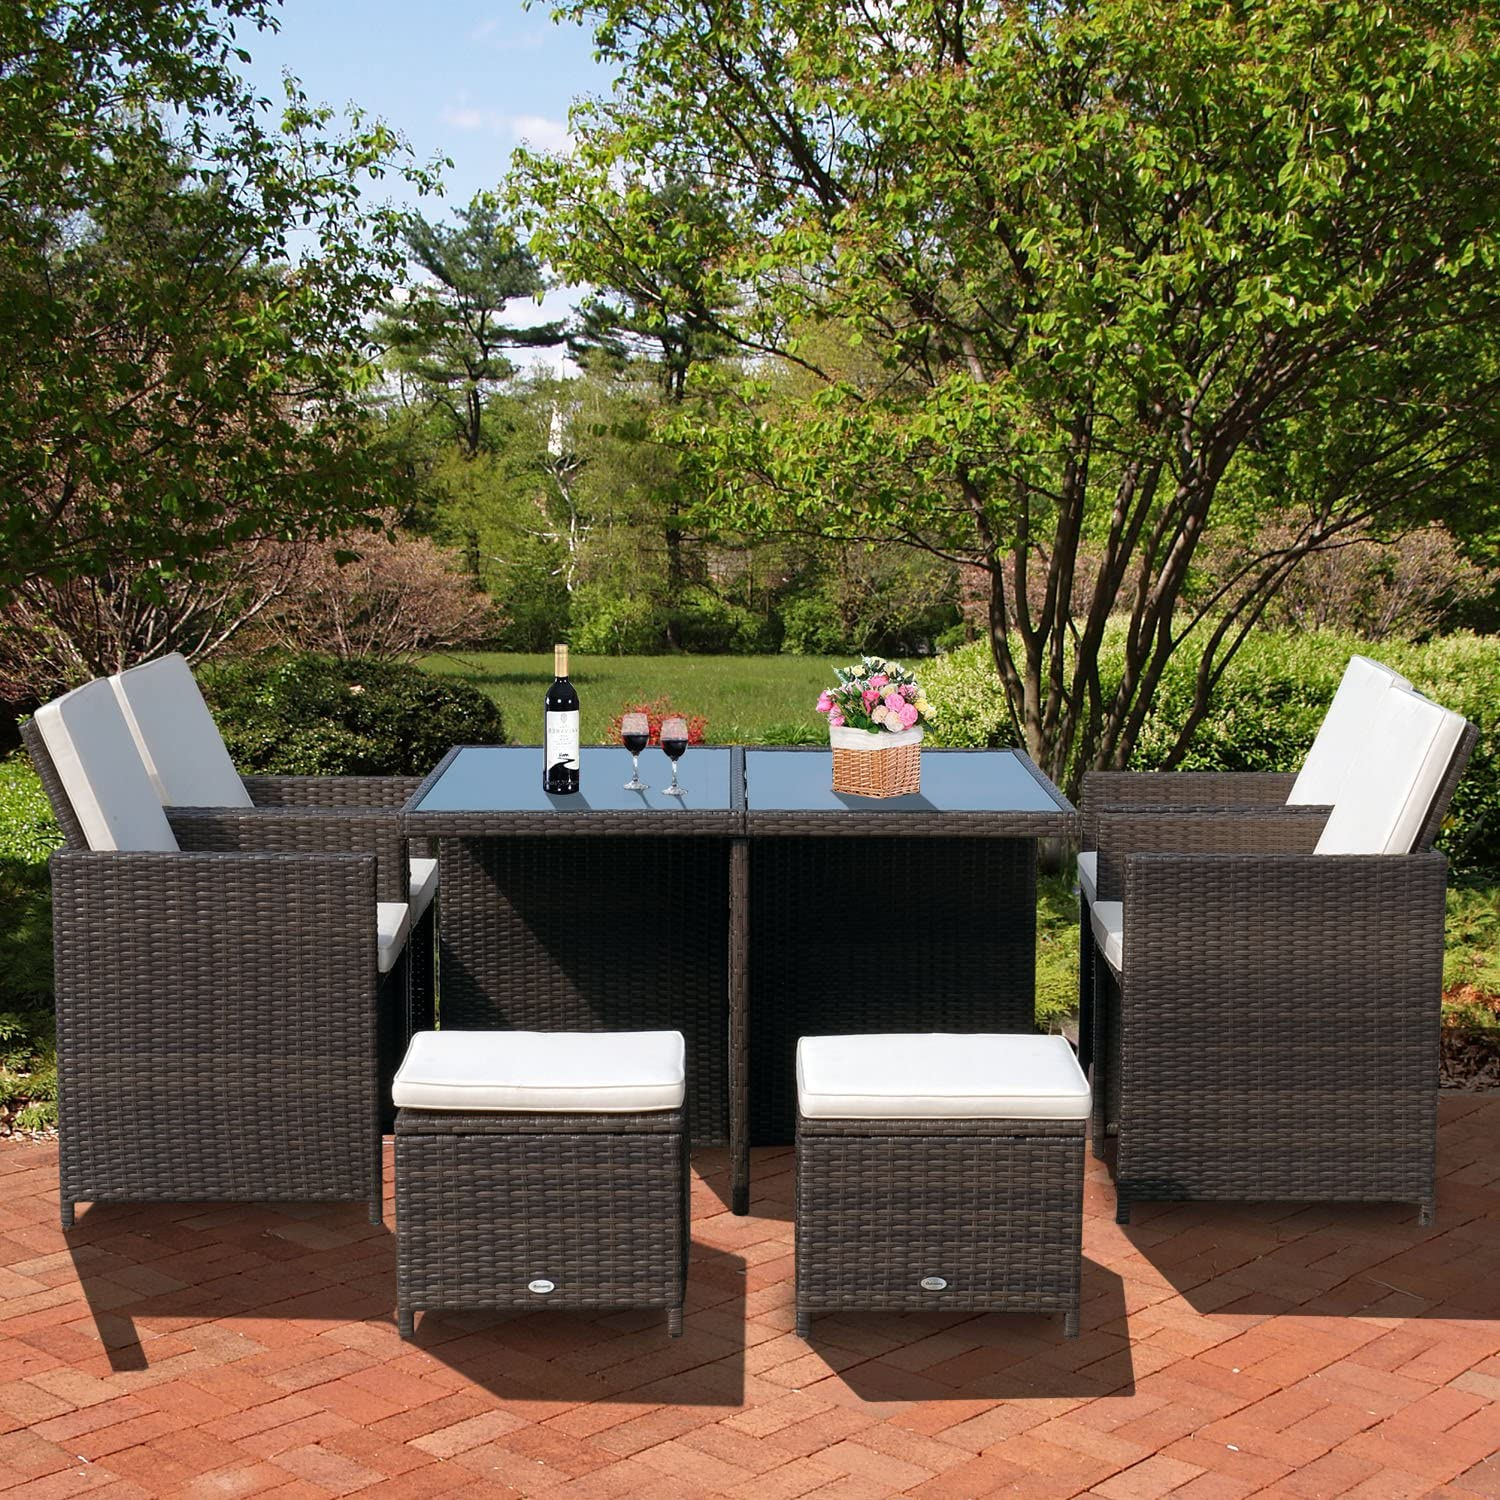 Outsunny 9pcs Rattan Dining Set Garden Wicker Sectional Sofa Set Outdoor Patio Furniuter All Weather Brown